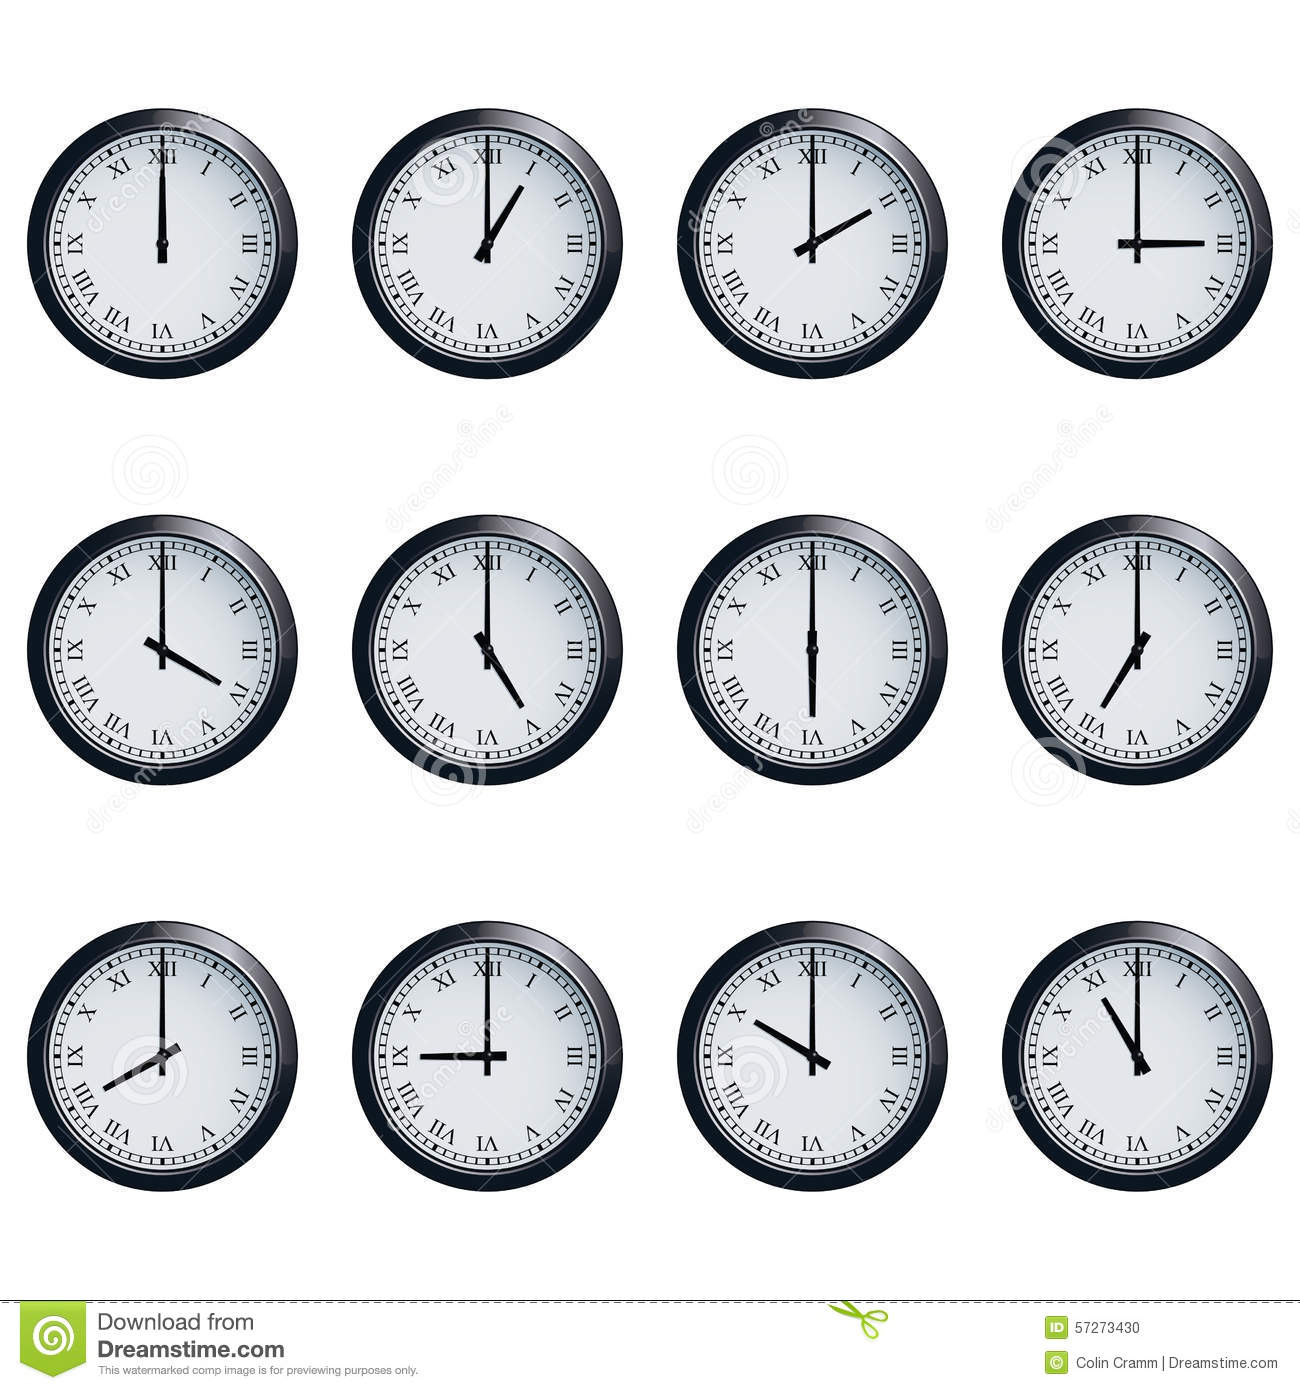 Clock Set With Roman Numerals Timed At Each Hour Stock Vector